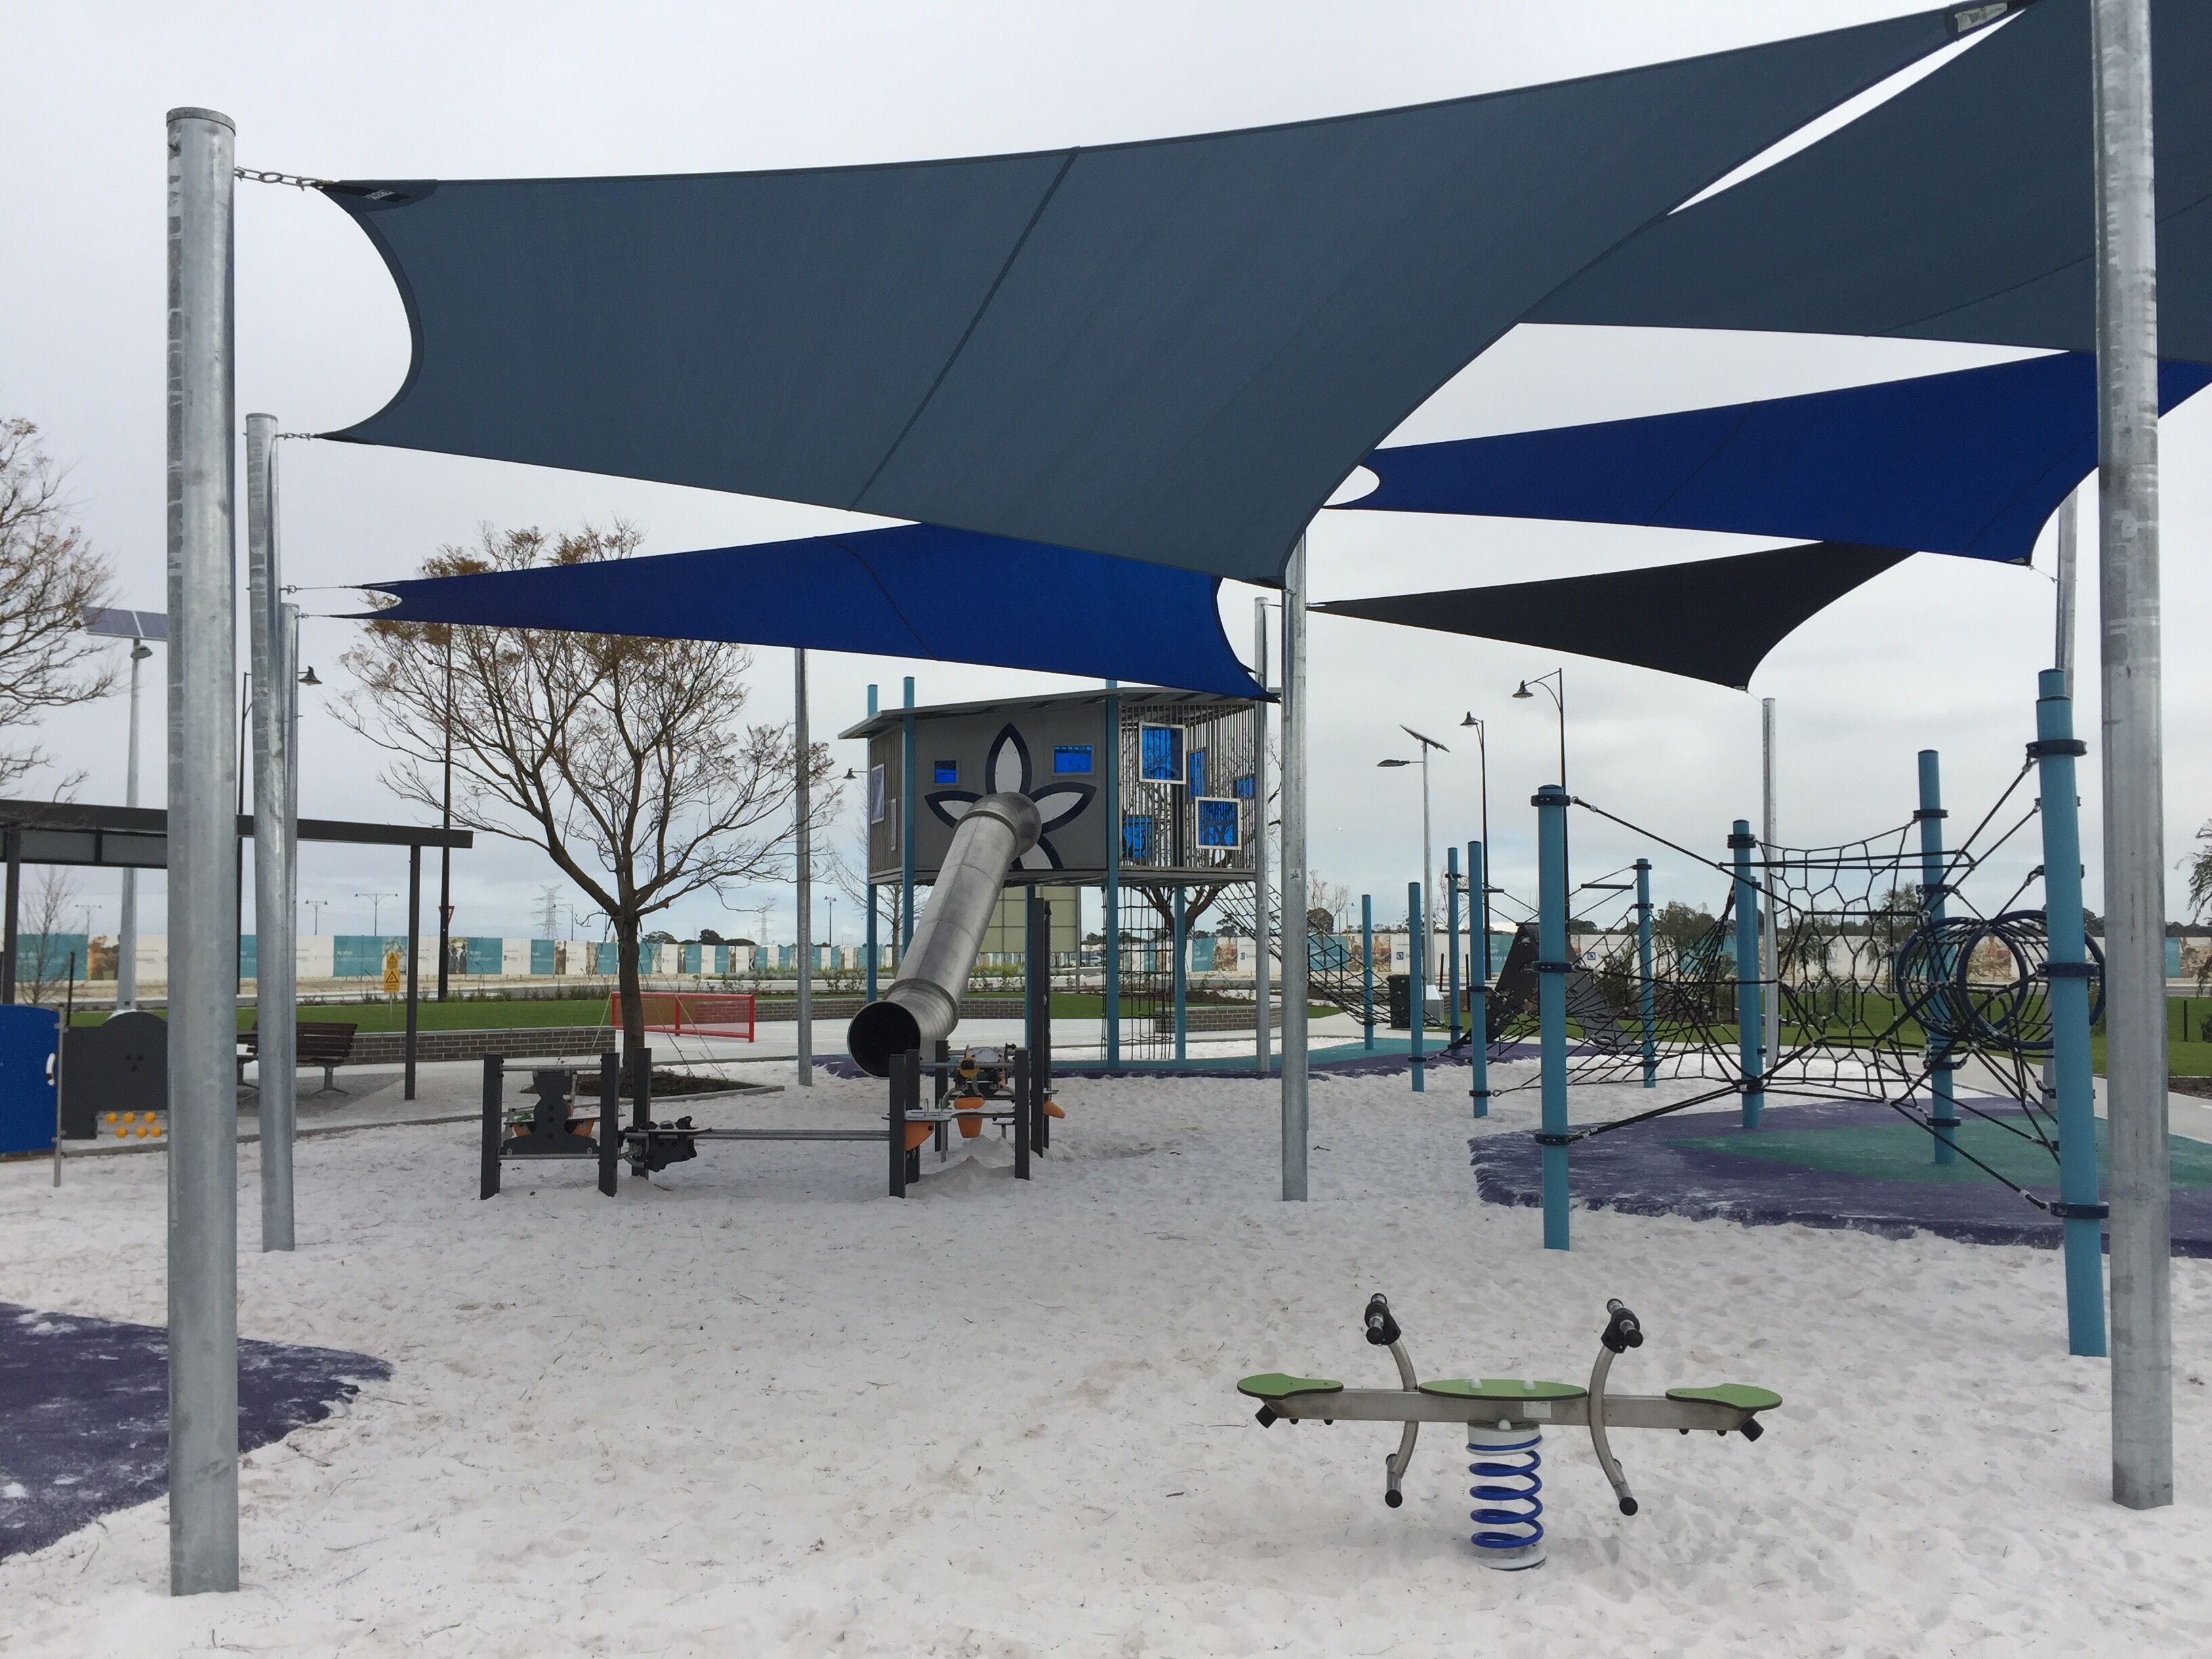 Playground with Stainless Steel Slide, Structure and Rope Climbing